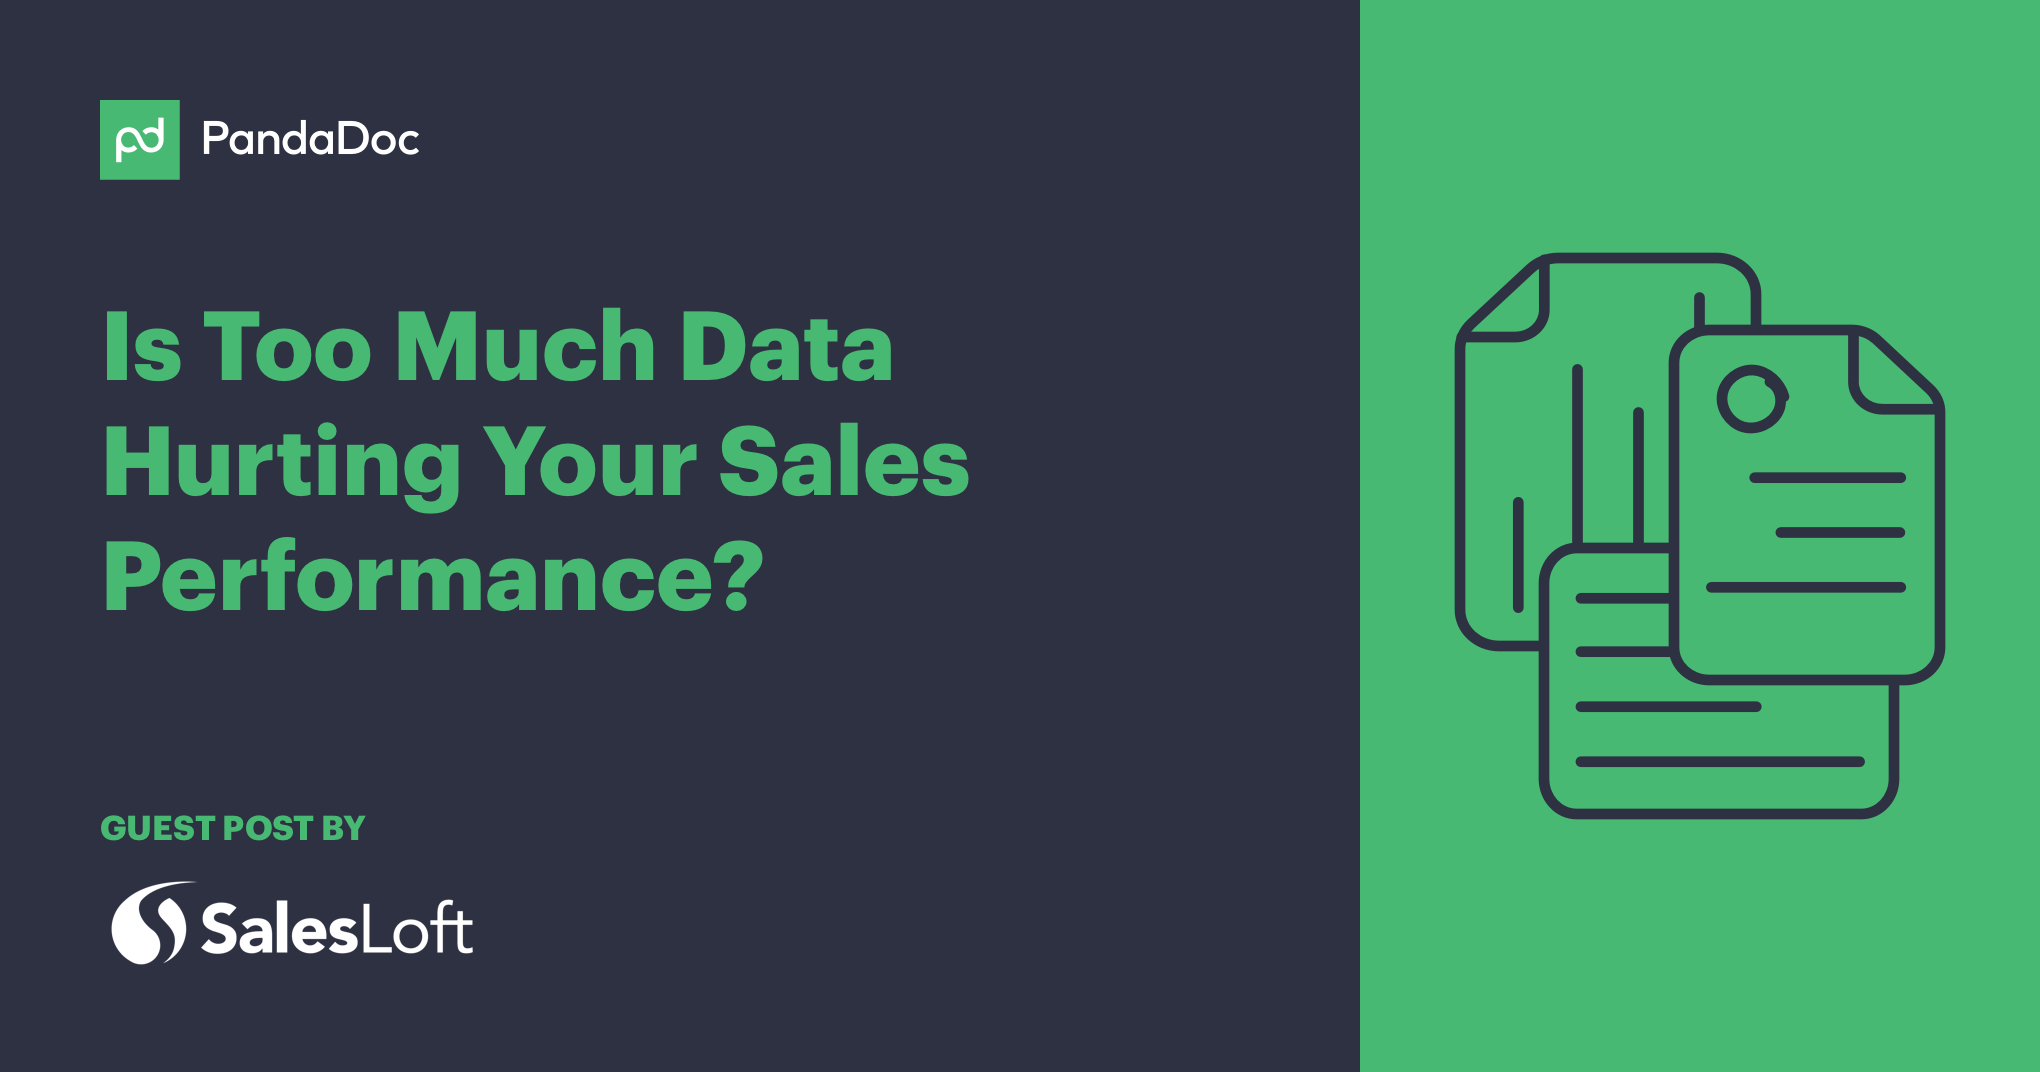 Is too much data hurting your sales performance?